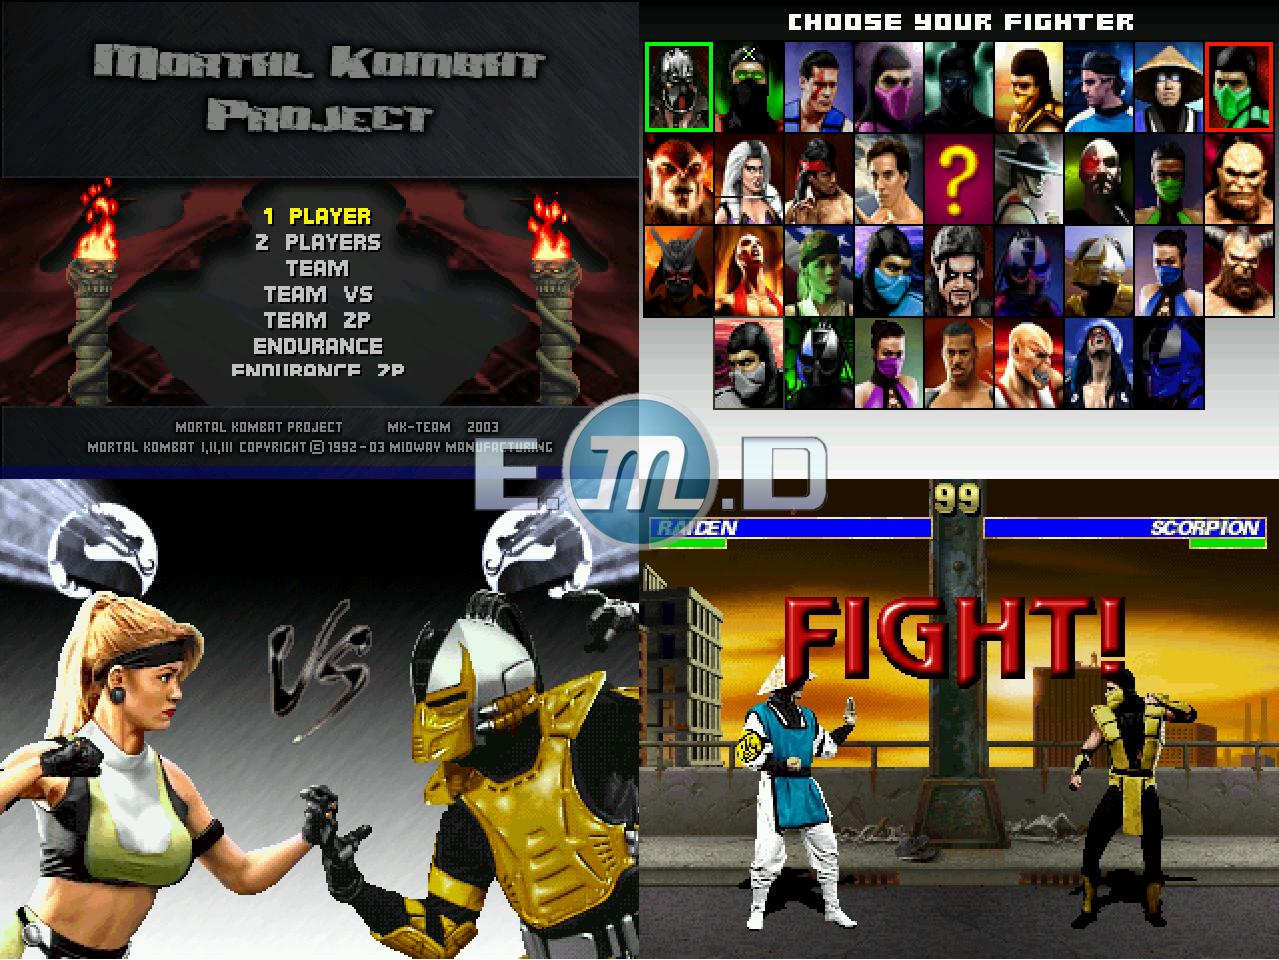 mortal kombat project Mortal kombat project, free and safe download mortal kombat project latest version: the 2d fighting game classic returns in this free version.